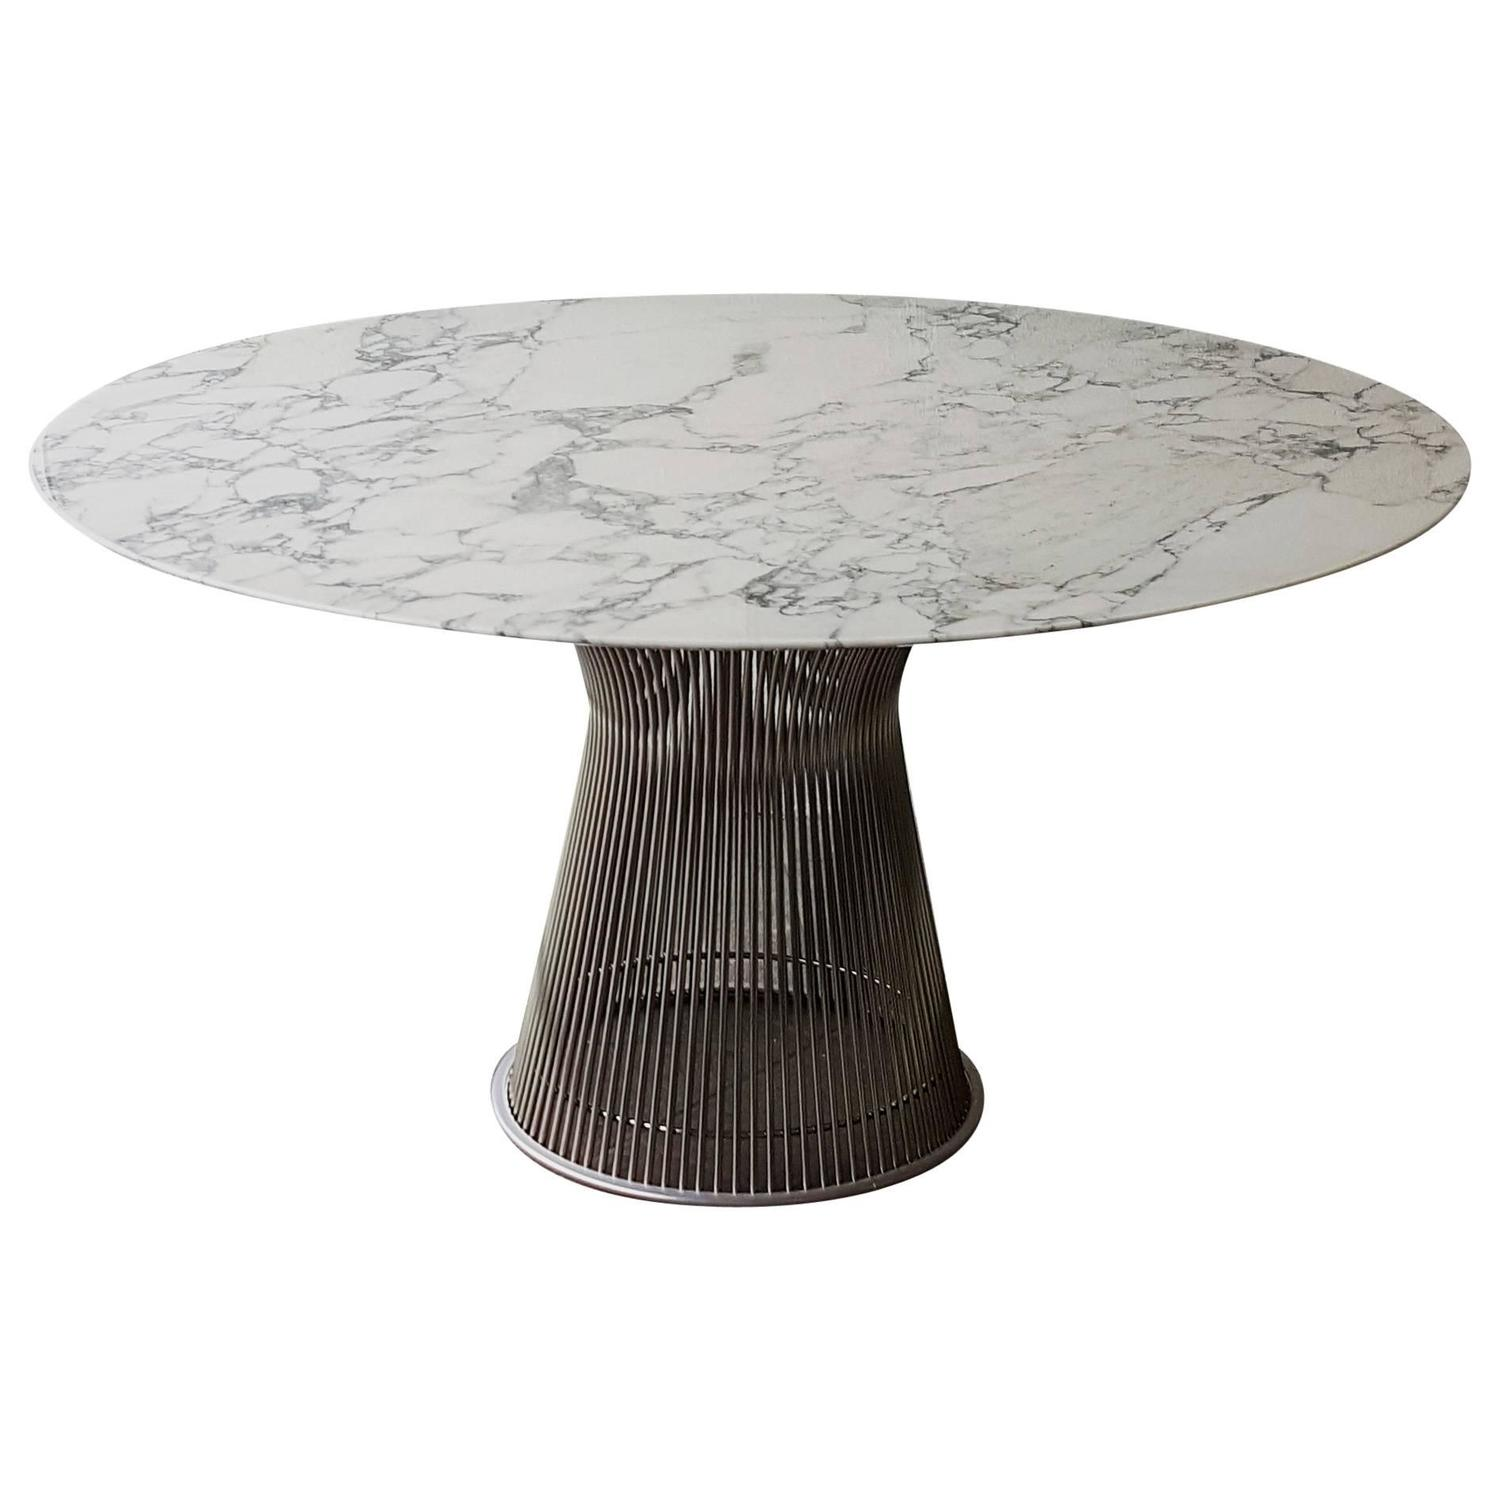 Warren platner for knoll arabescato marble top dining for Table warren platner